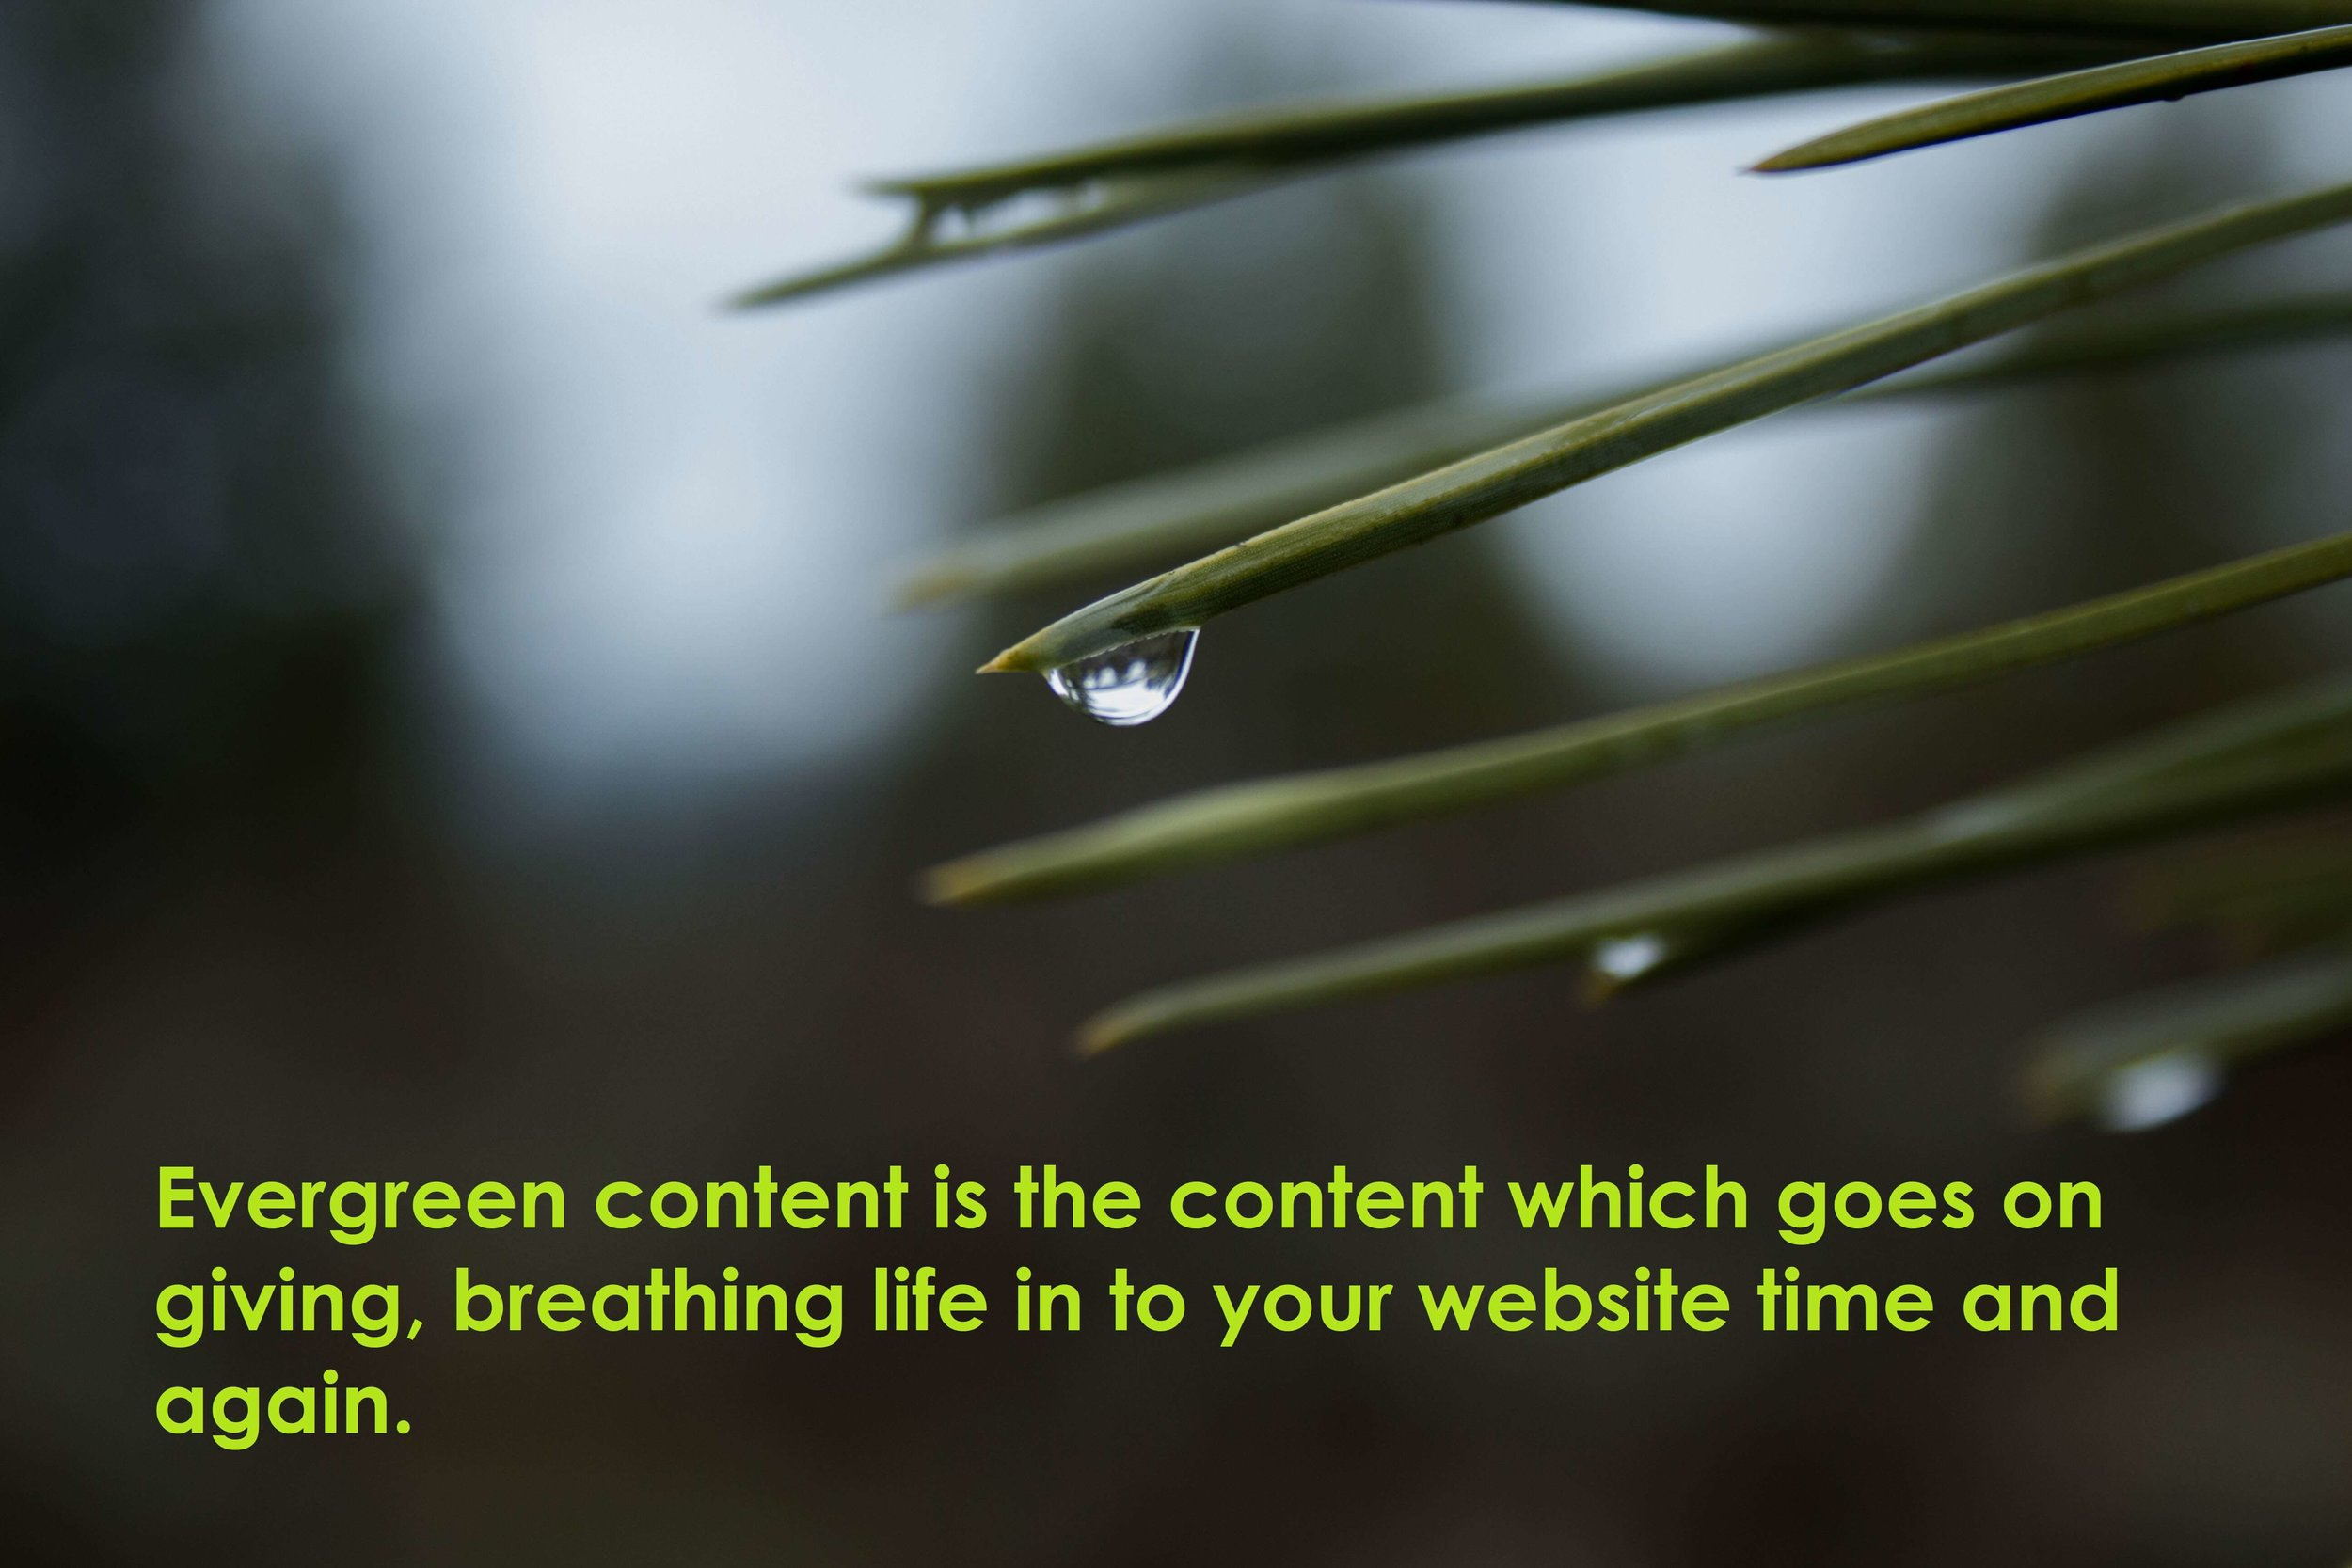 evergreen content boosts the success of your site